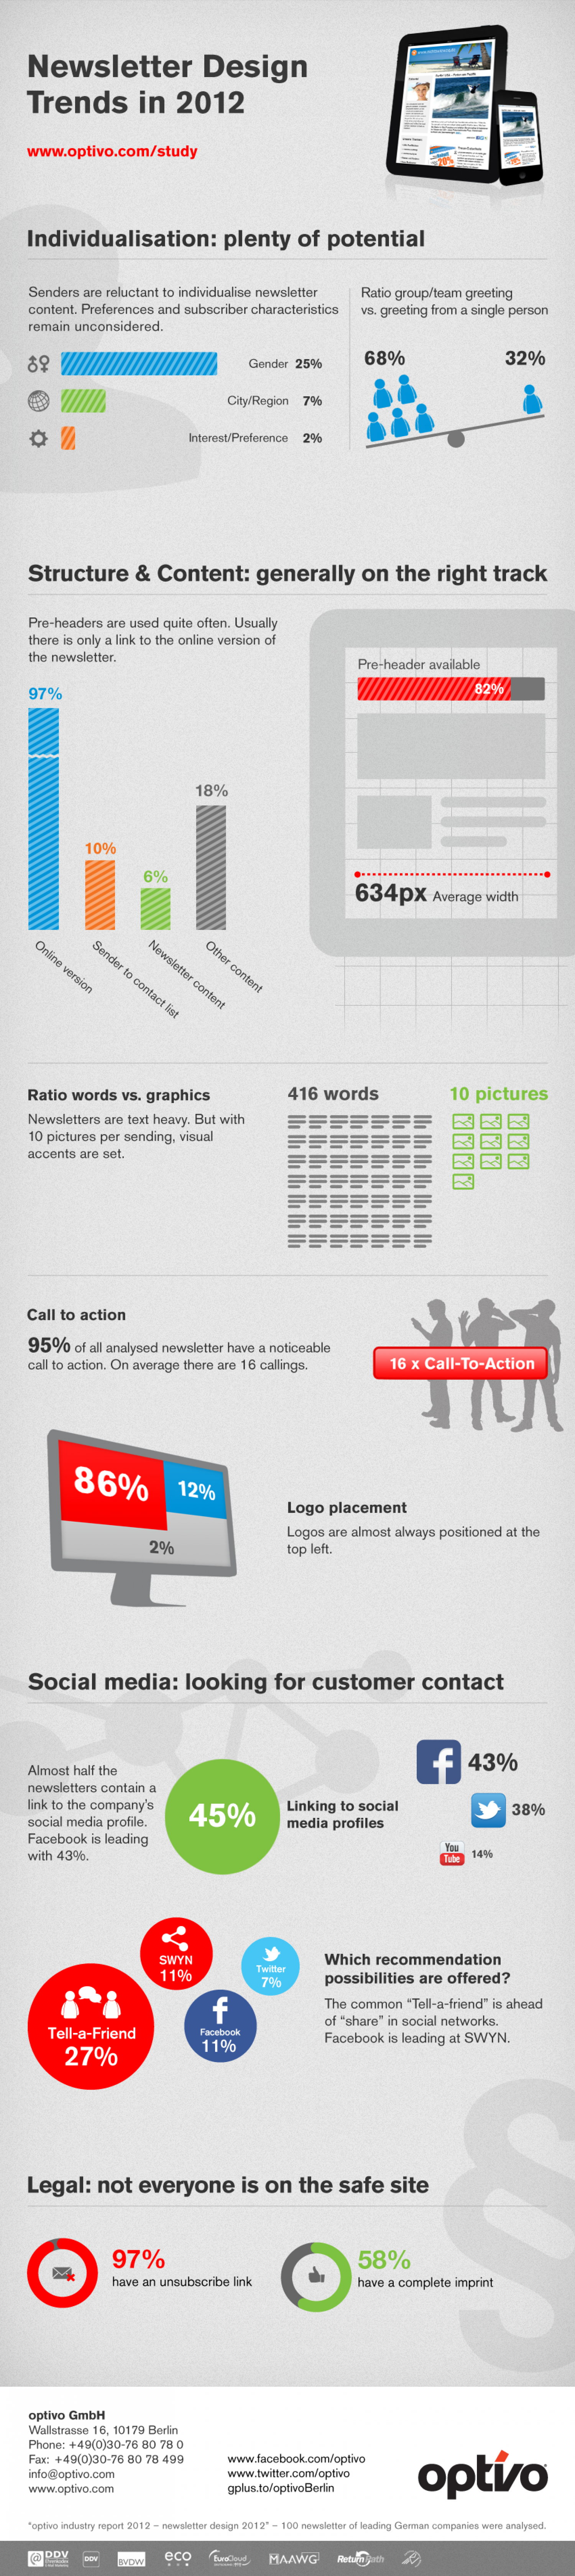 Newsletter Design Trends in 2012 Infographic